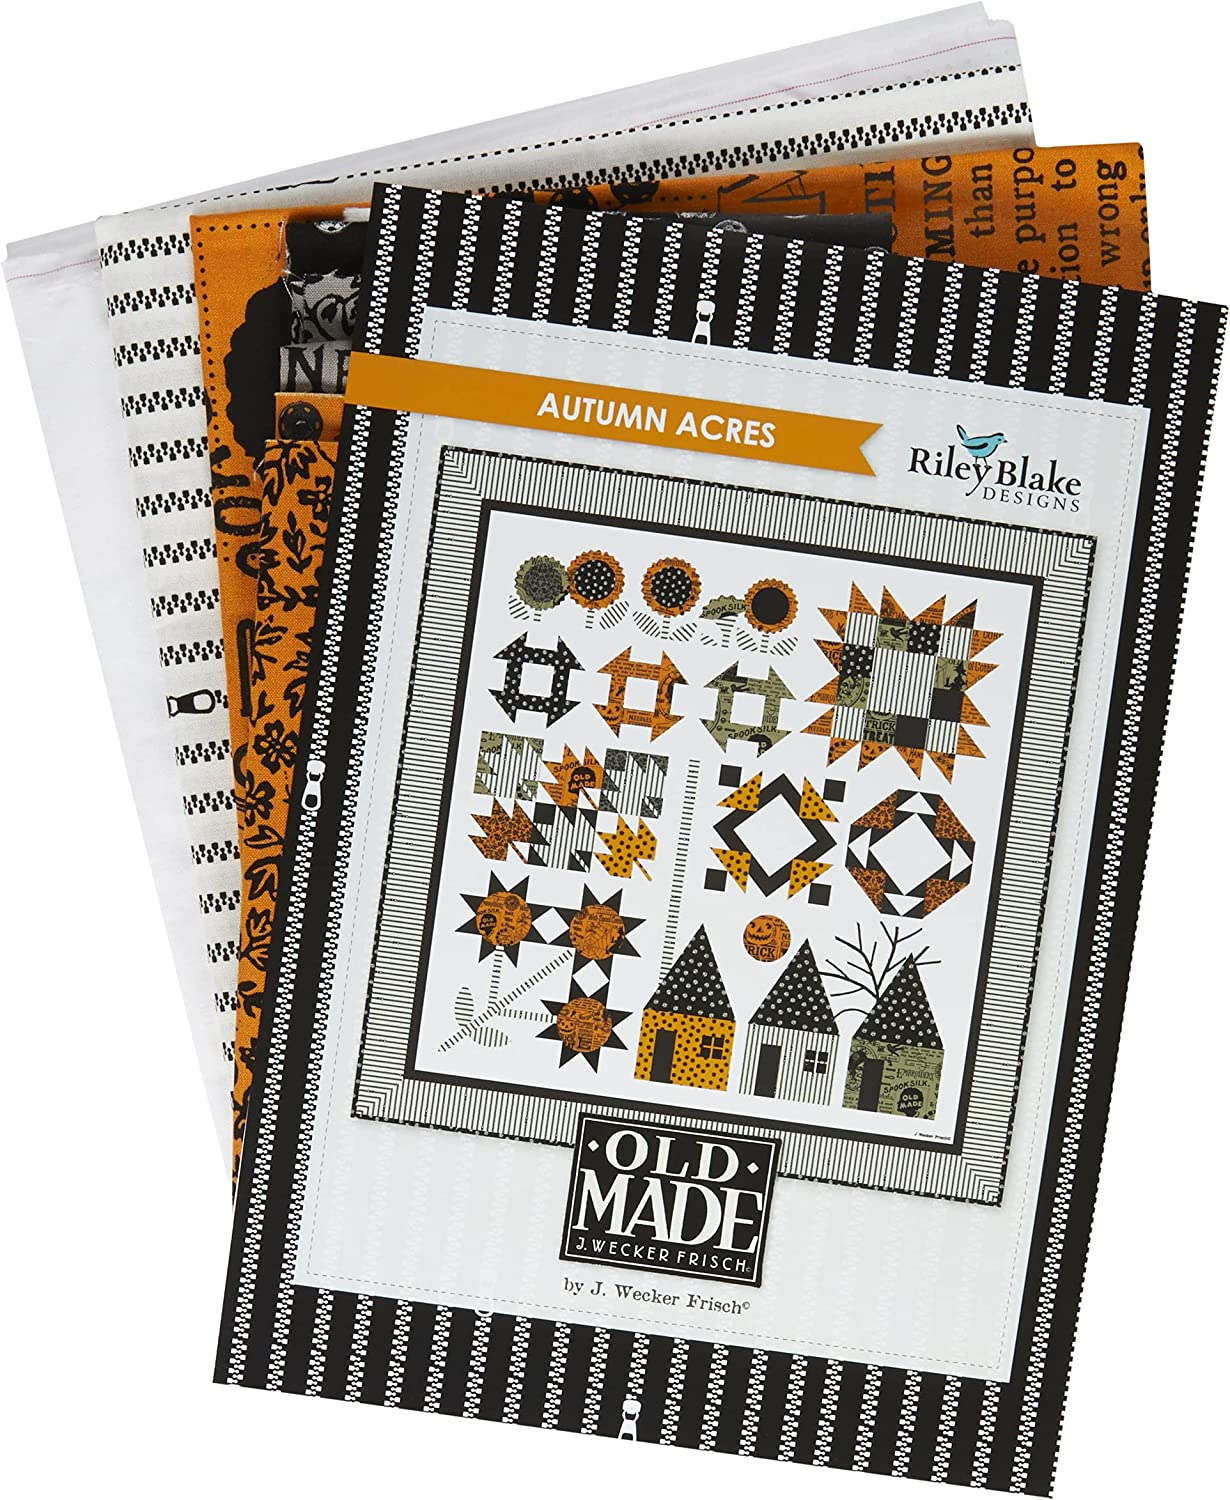 Riley Blake Courier shipping free shipping Autumn Quilt Acres Kit Max 83% OFF